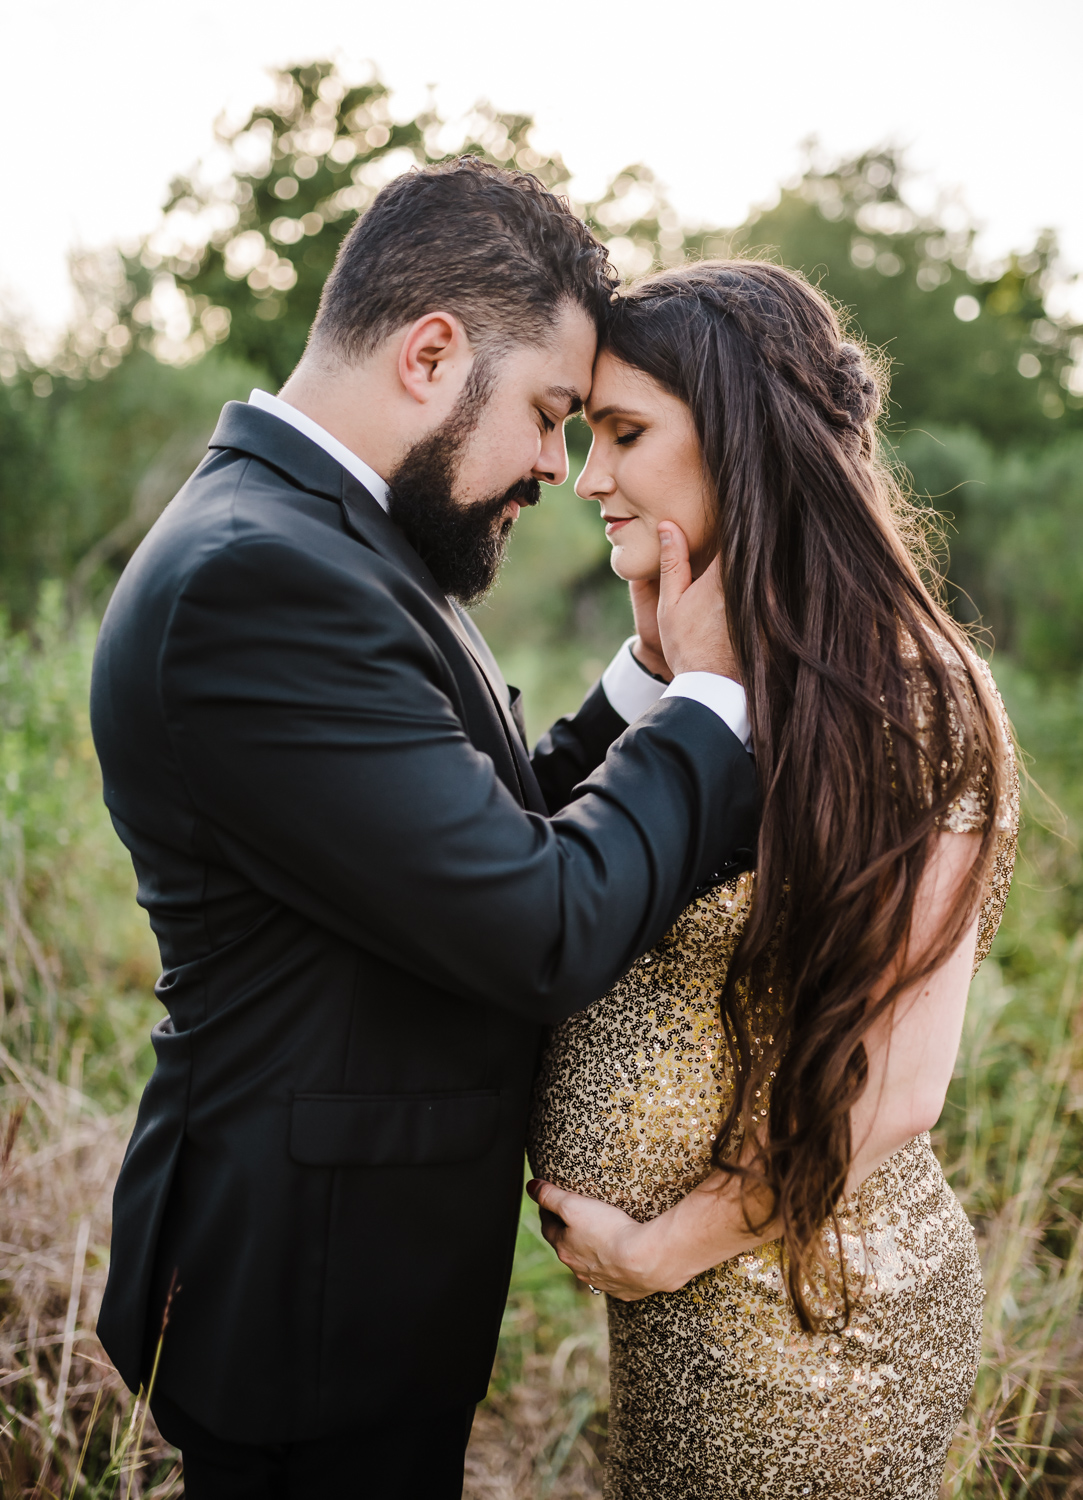 Romantic maternity session at park for maternity session, Katy Texas family Photographer, Richmond Texas family photographer, Sweet Nest Photography